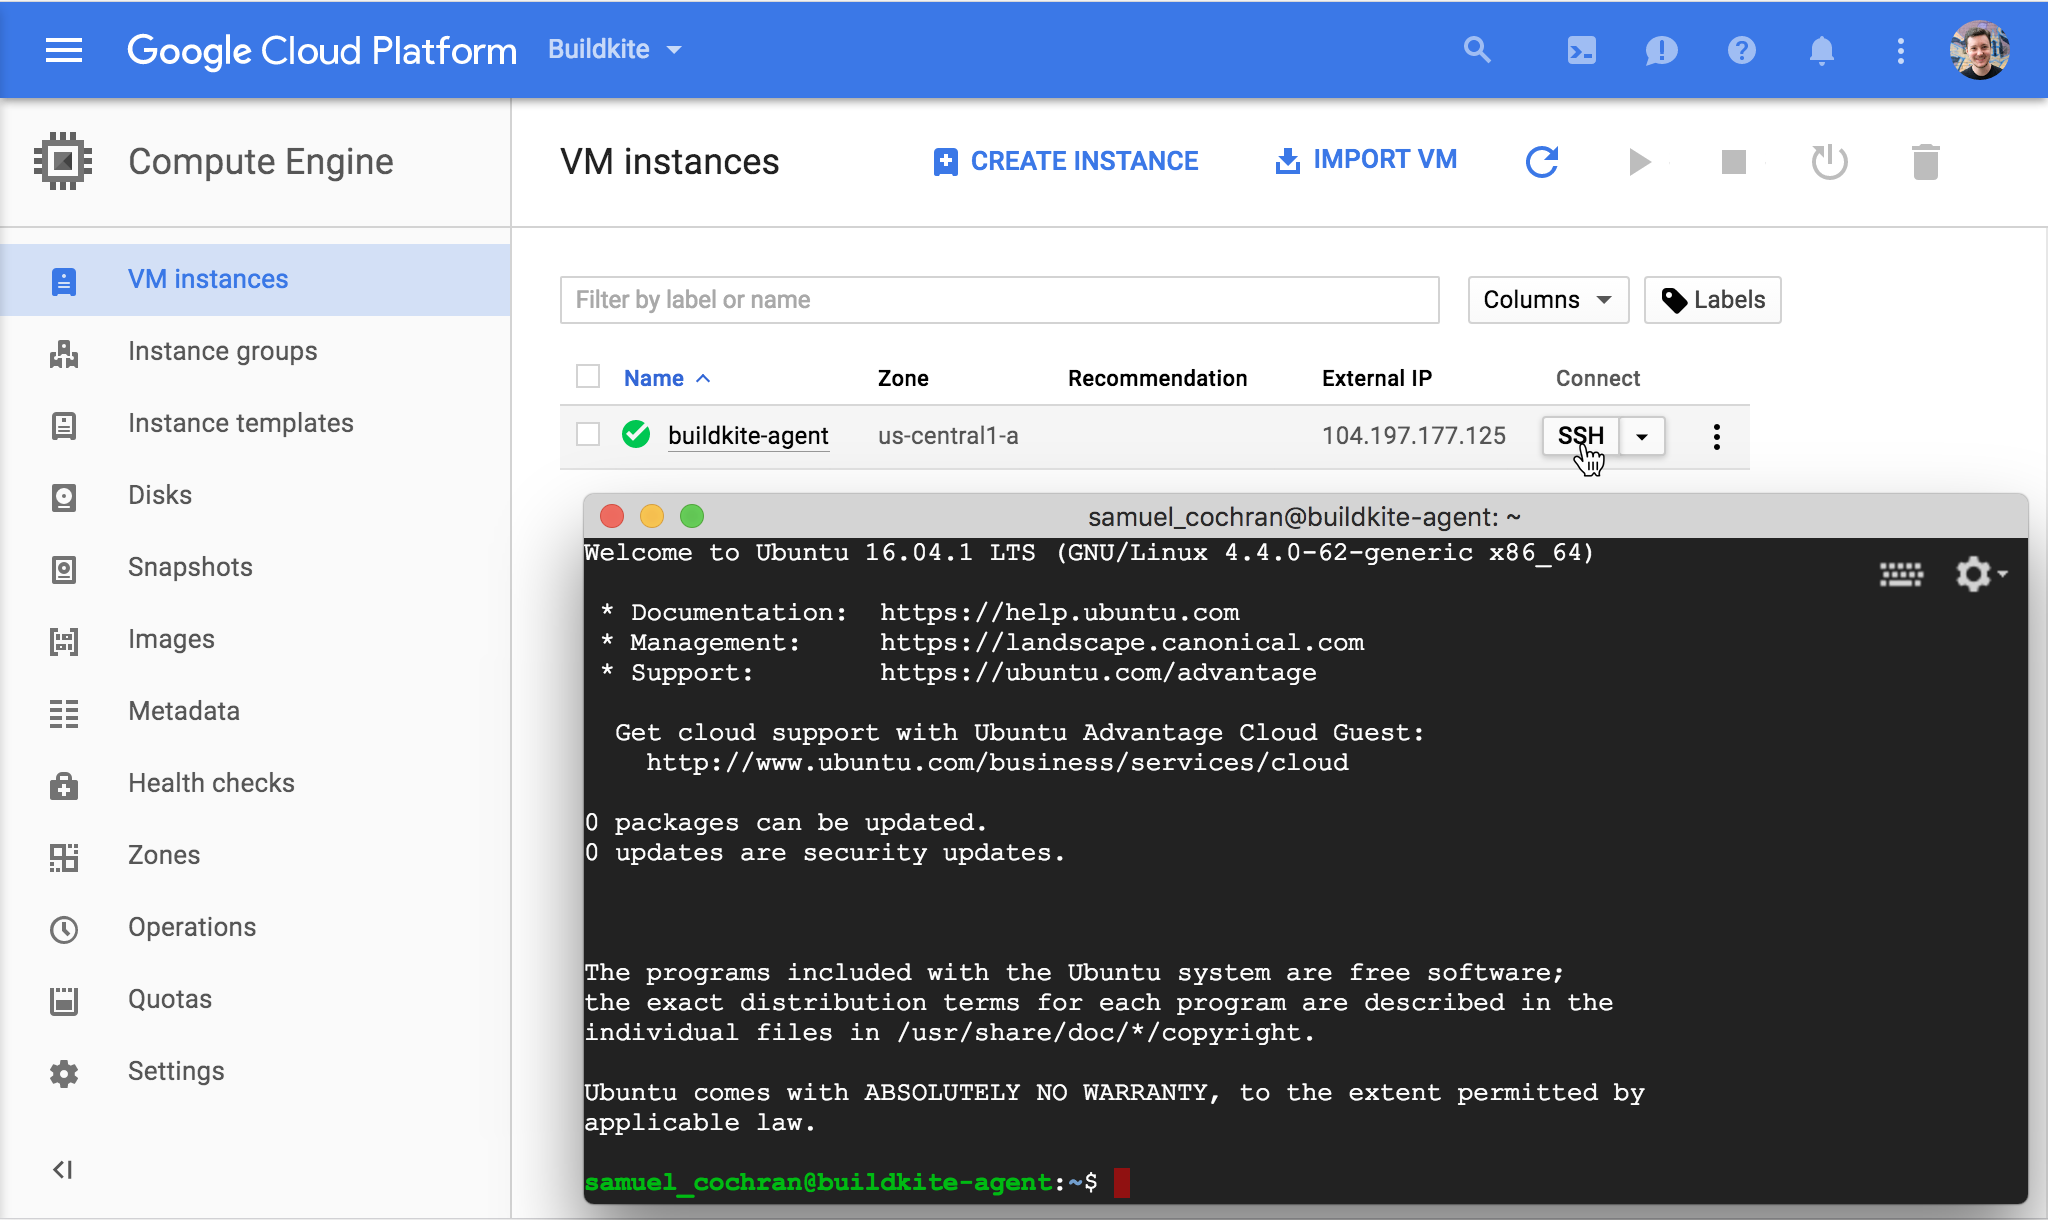 Screenshot of connecting to a Google Compute Engine instance via the Google Cloud Console